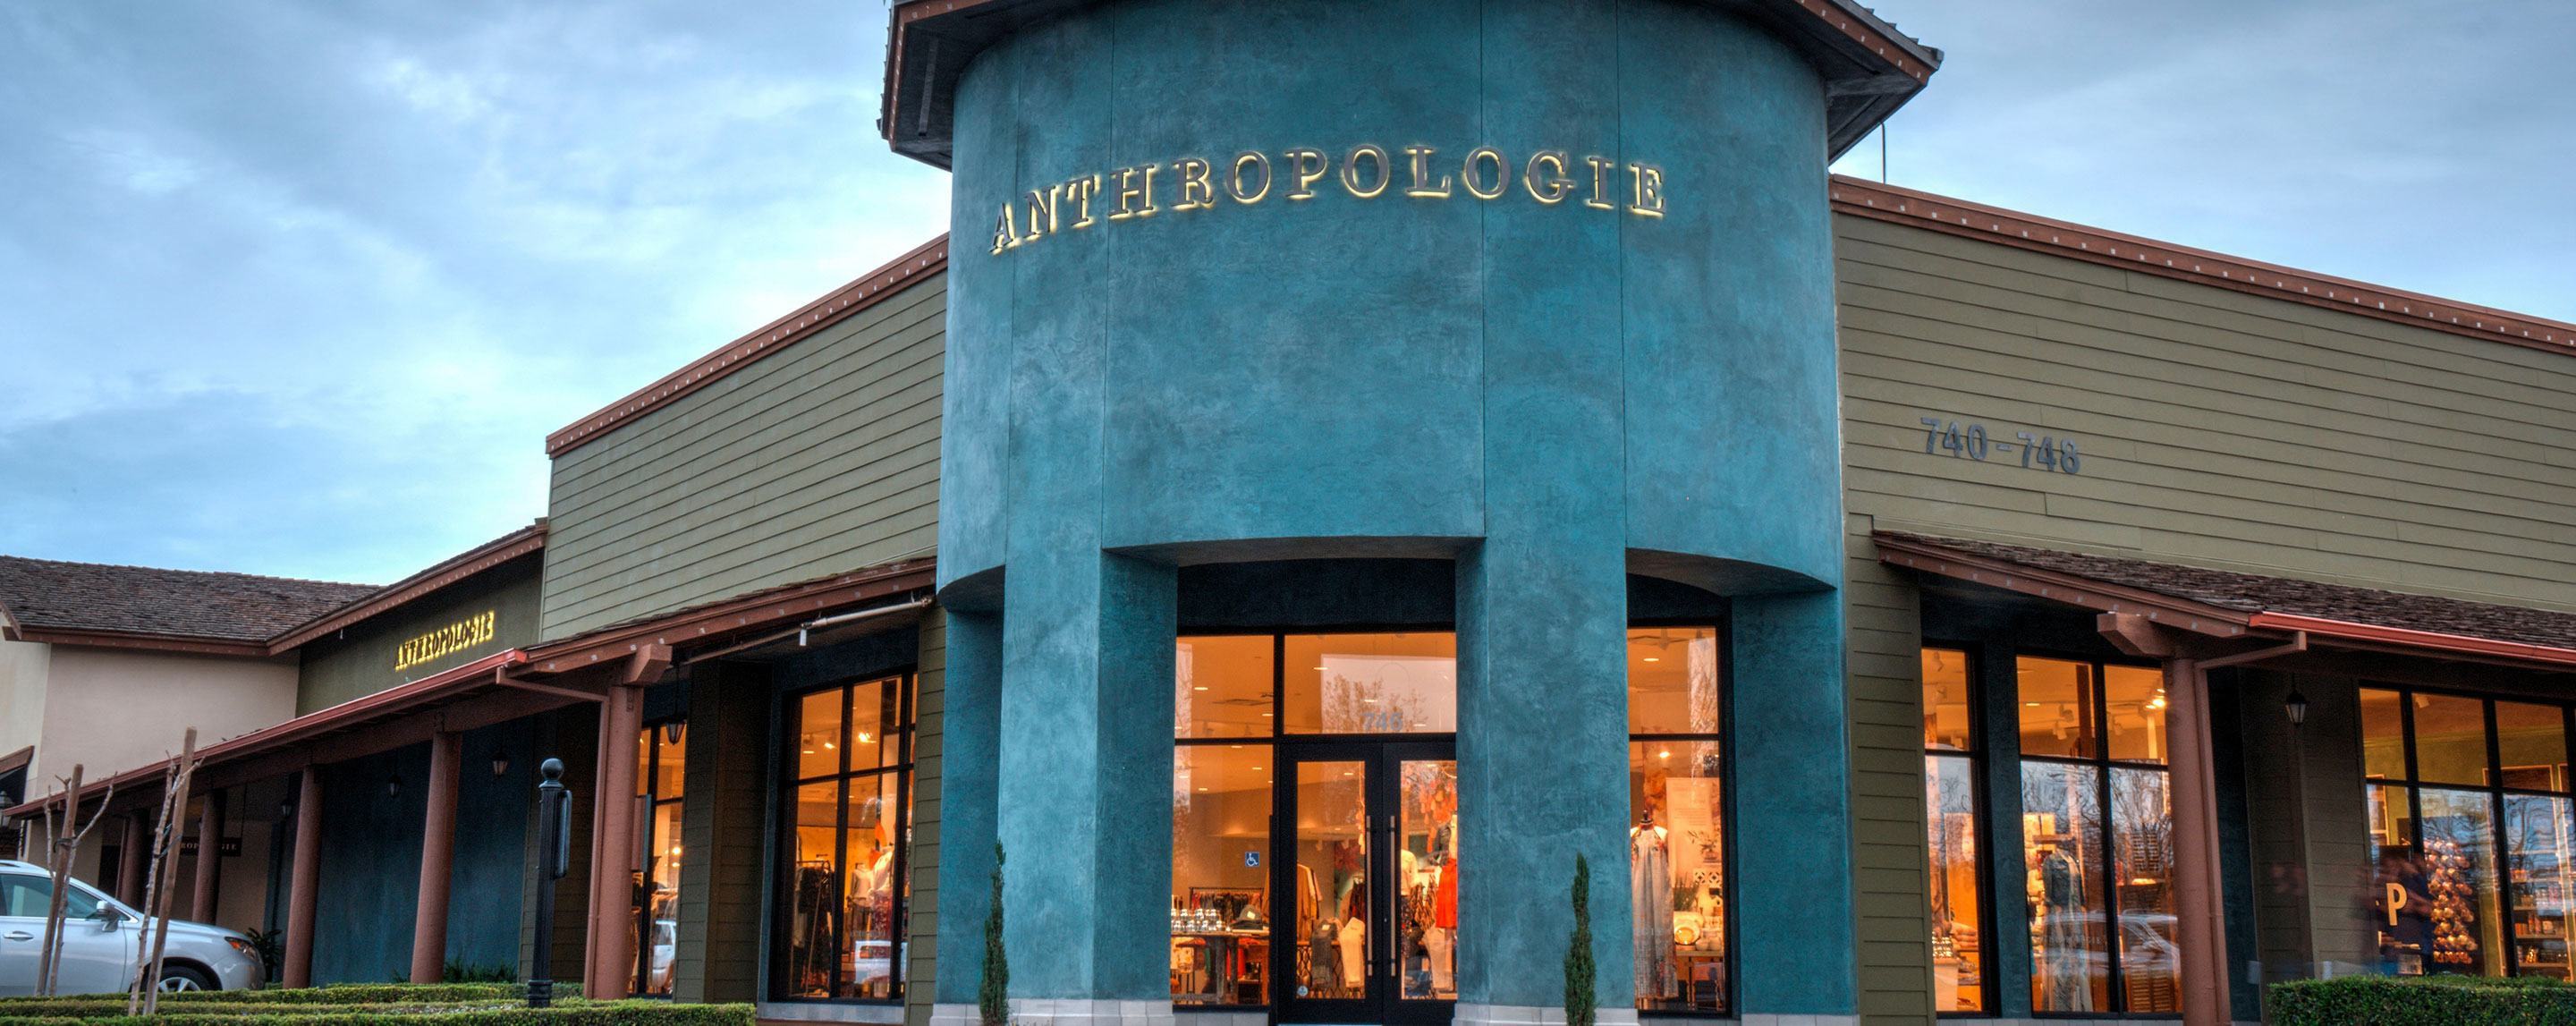 A blue-painted Anthropologie store is located in a corner location of an outdoor shopping plaza on an overcast day.